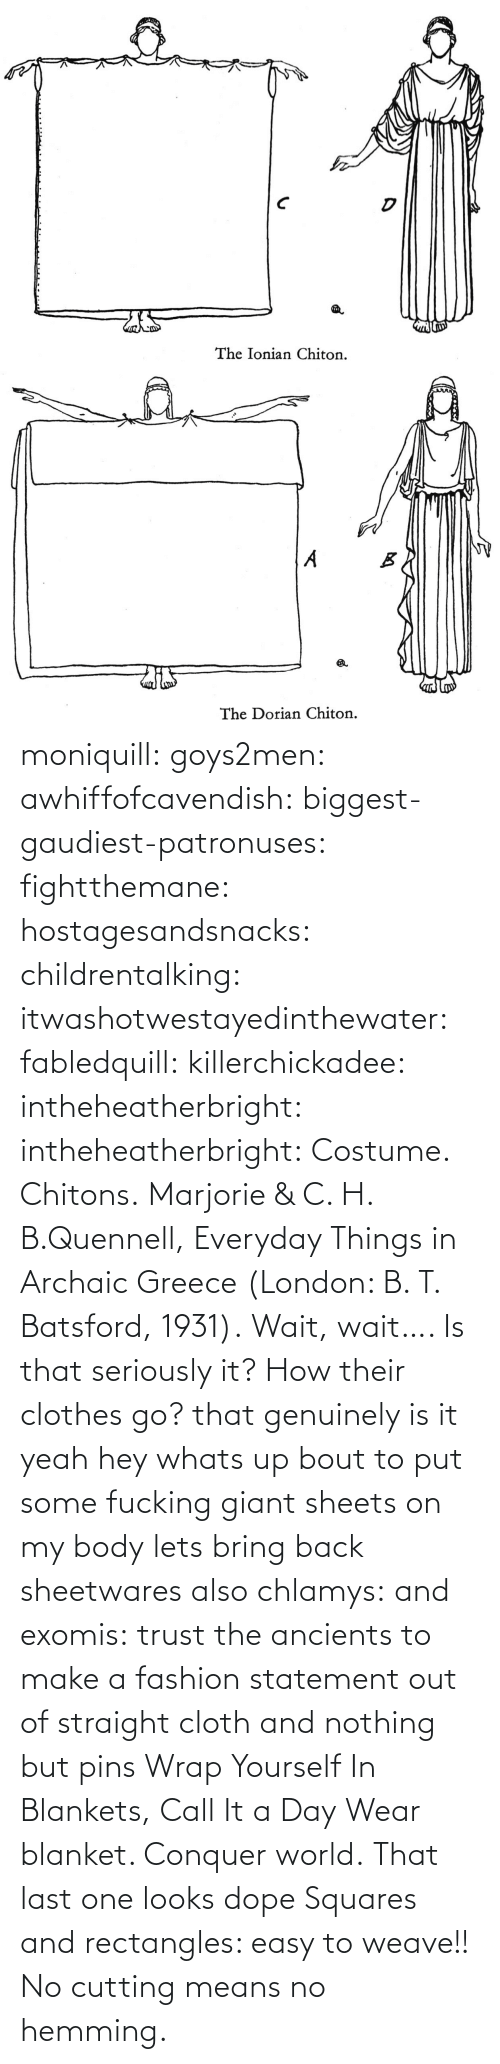 Colours: moniquill: goys2men:  awhiffofcavendish:  biggest-gaudiest-patronuses:  fightthemane:  hostagesandsnacks:  childrentalking:  itwashotwestayedinthewater:  fabledquill:  killerchickadee:  intheheatherbright:  intheheatherbright:  Costume. Chitons.  Marjorie & C. H. B.Quennell, Everyday Things in Archaic Greece (London: B. T. Batsford, 1931).  Wait, wait…. Is that seriously it? How their clothes go?  that genuinely is it  yeah hey whats up bout to put some fucking giant sheets on my body  lets bring back sheetwares  also chlamys: and exomis:  trust the ancients to make a fashion statement out of straight cloth and nothing but pins  Wrap Yourself In Blankets, Call It a Day  Wear blanket. Conquer world.   That last one looks dope    Squares and rectangles: easy to weave!! No cutting means no hemming.